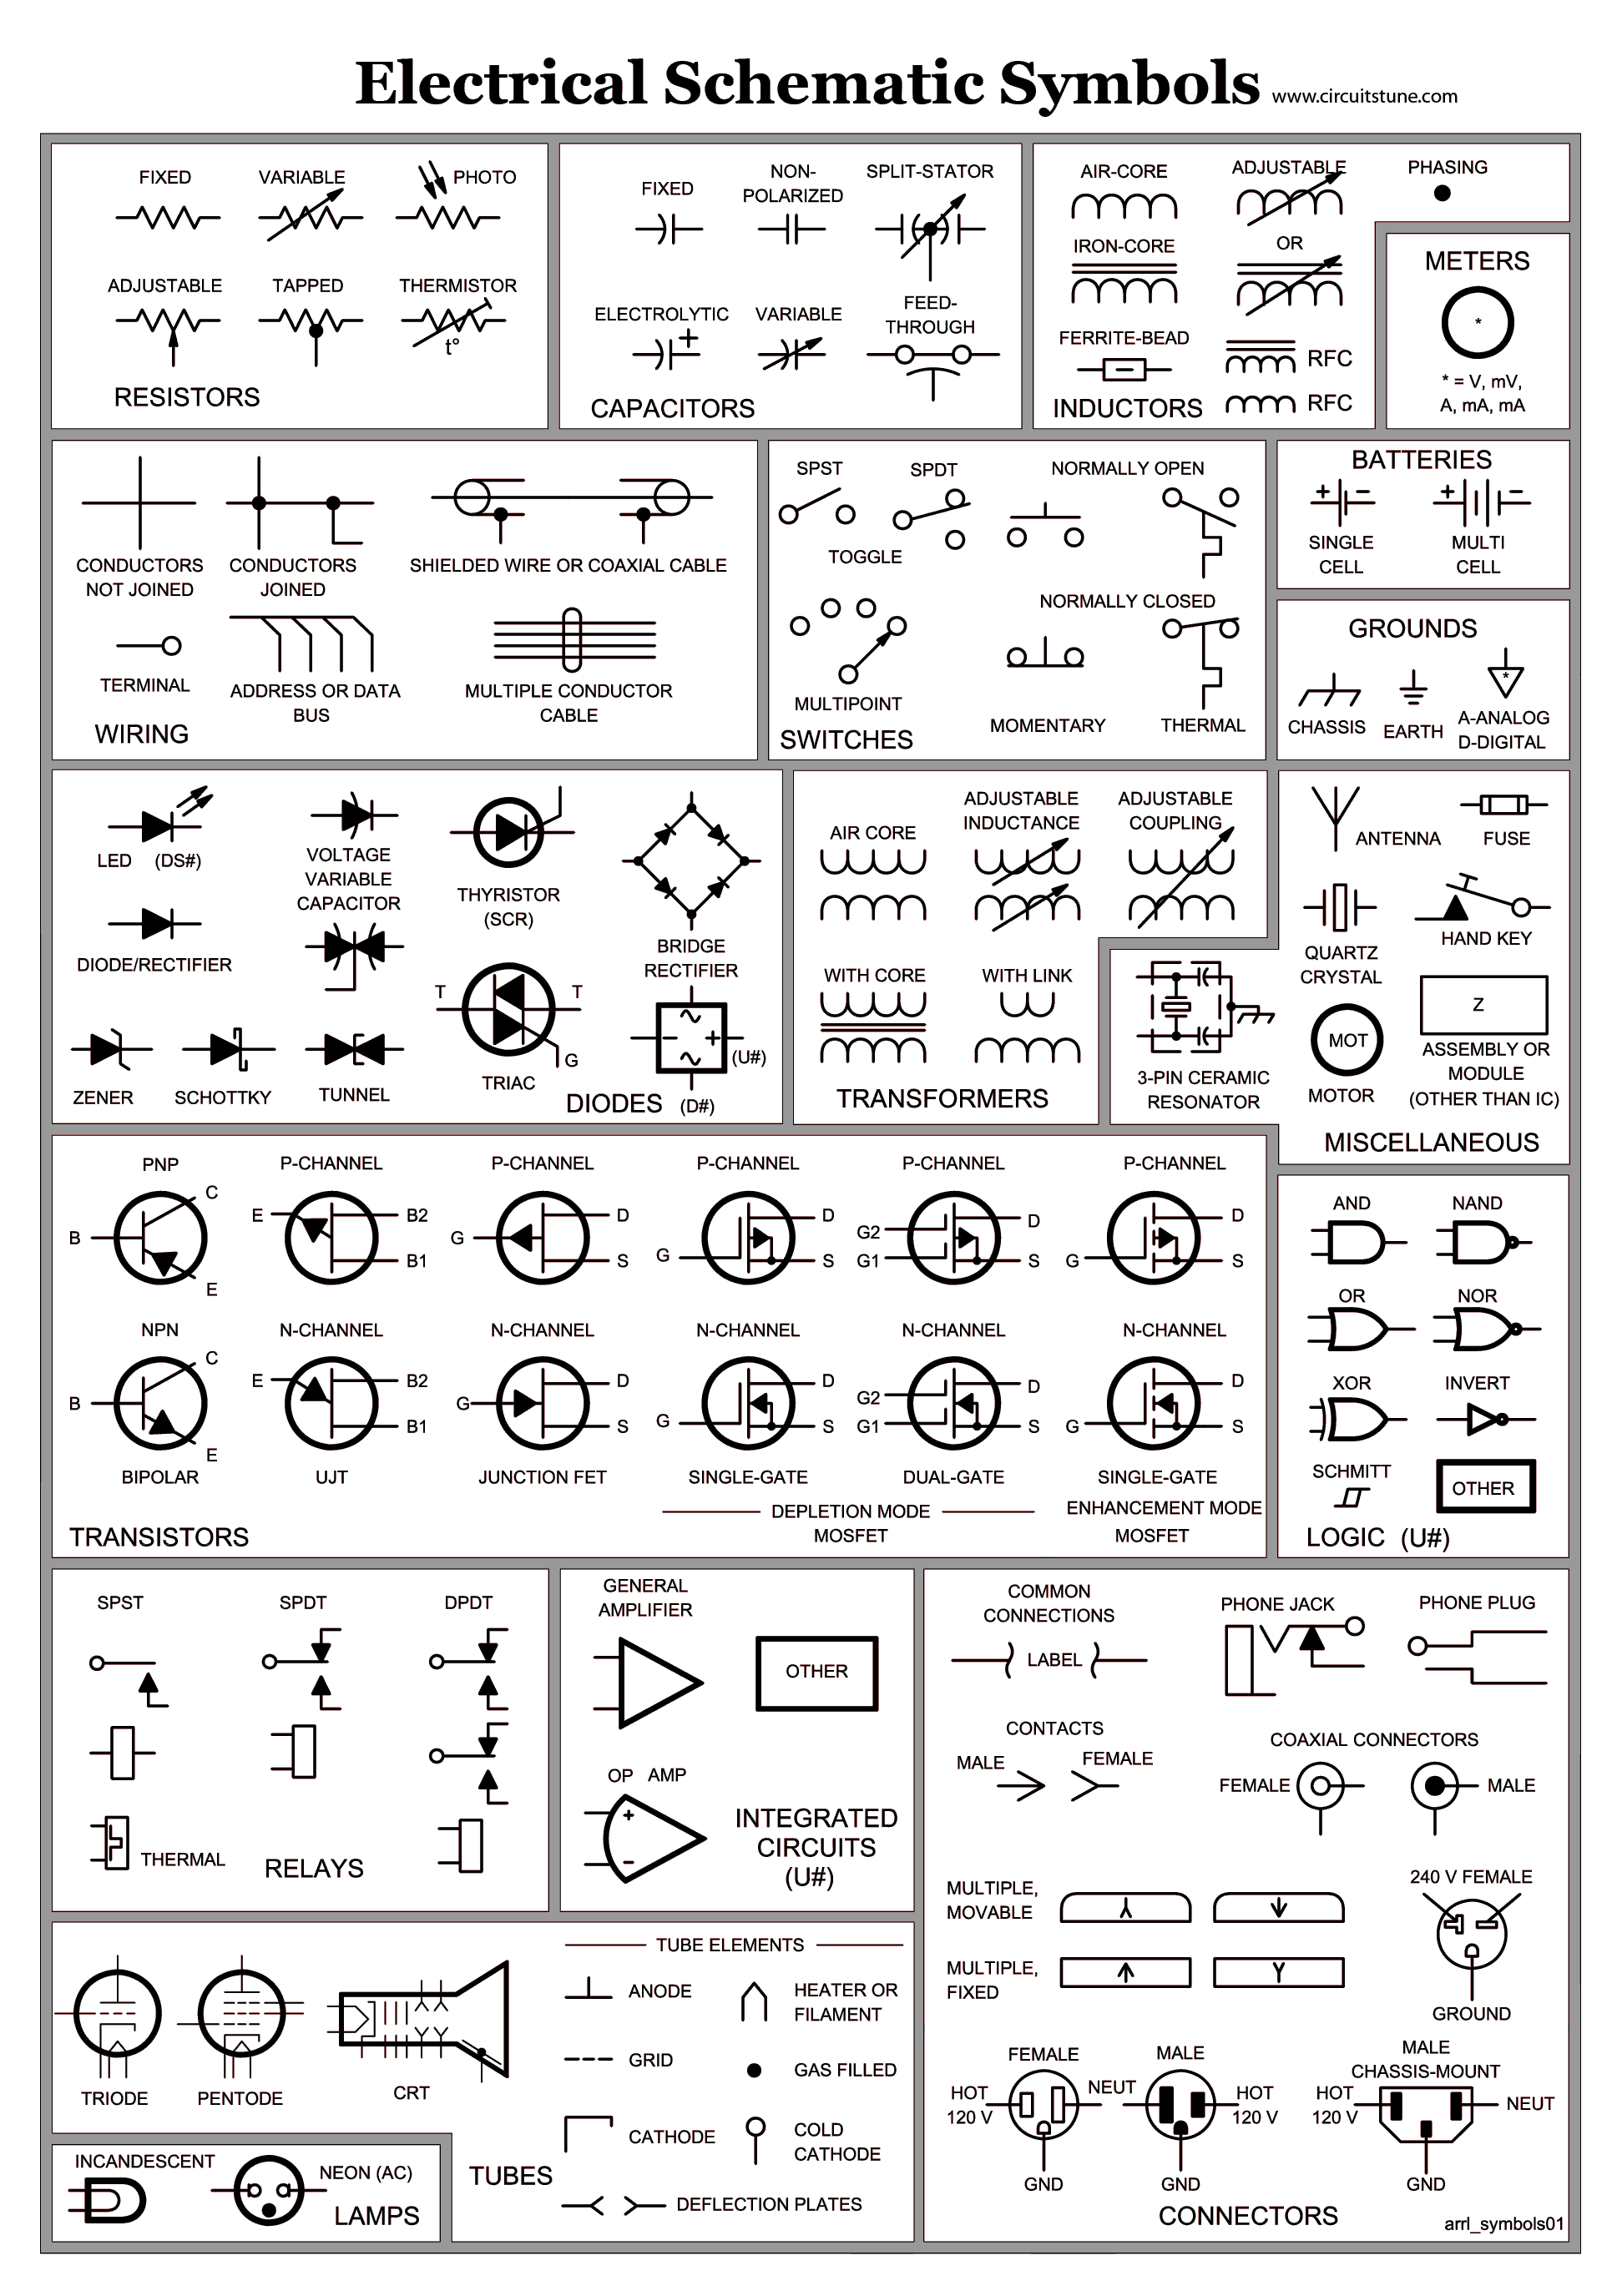 Circuit schematic symbols bmet wiki fandom powered by wikia circuit schematic symbols ccuart Image collections